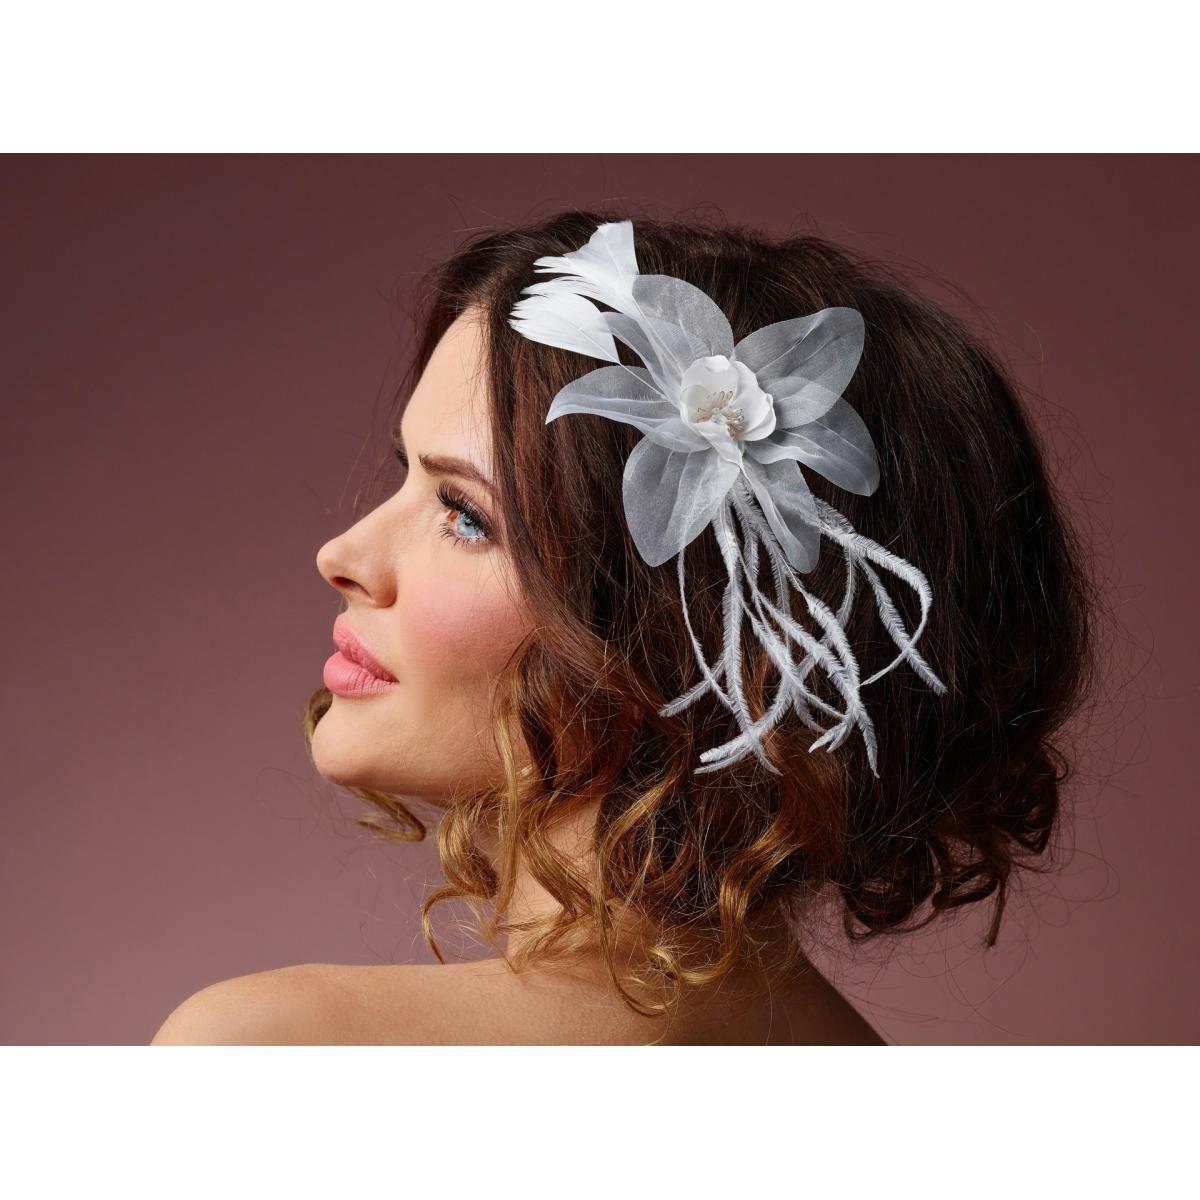 Poirier Ali Floral & Feather Corsage on Clip